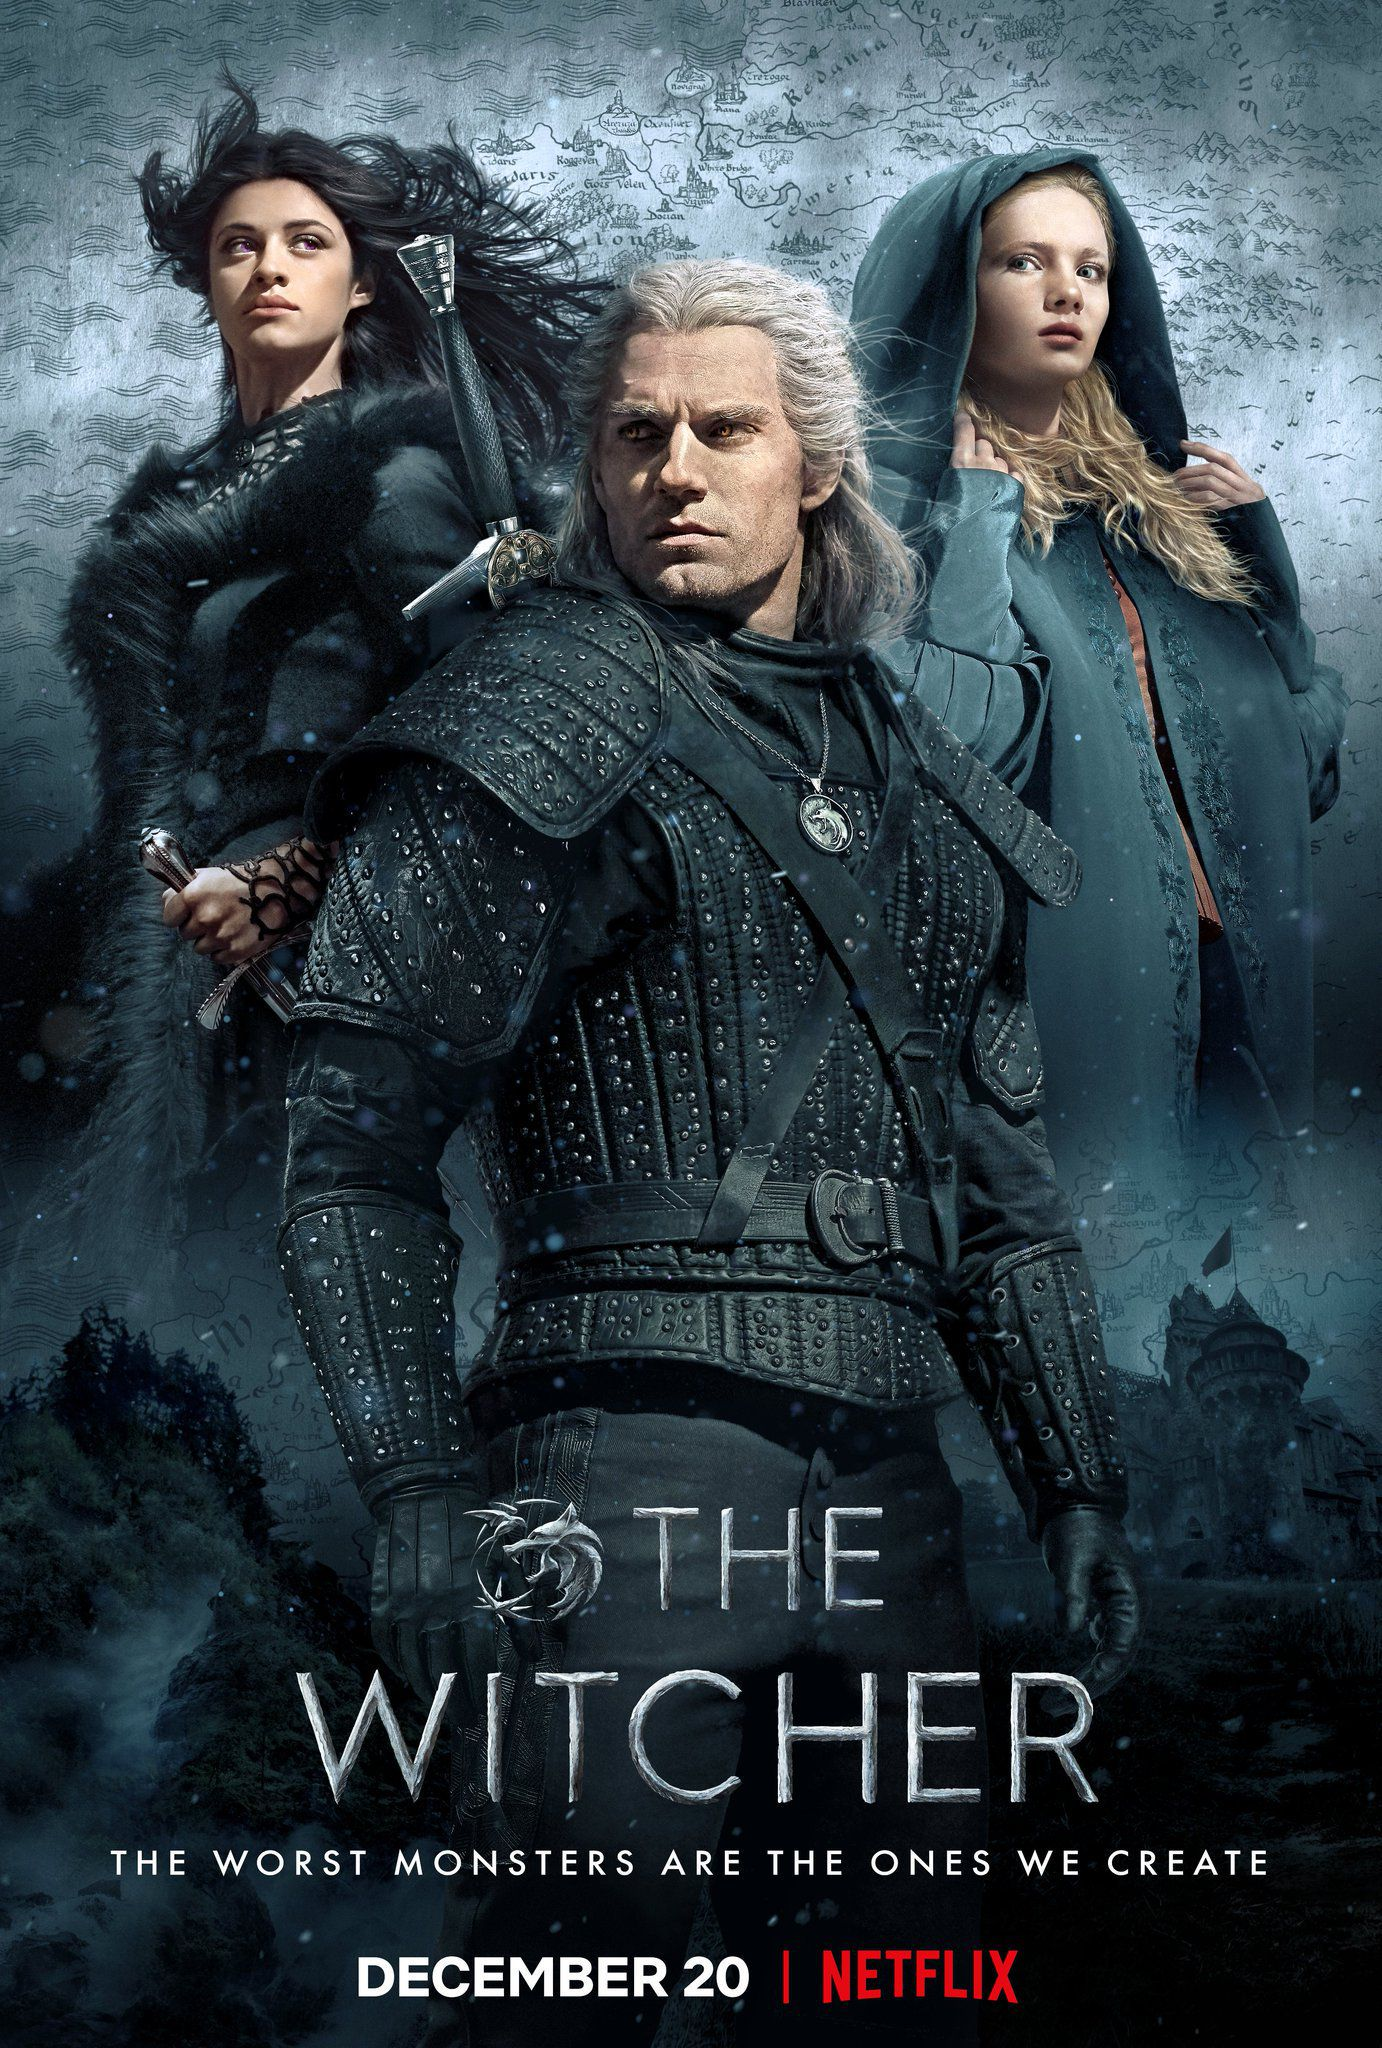 The Witcher - Série (2019) streaming VF gratuit complet